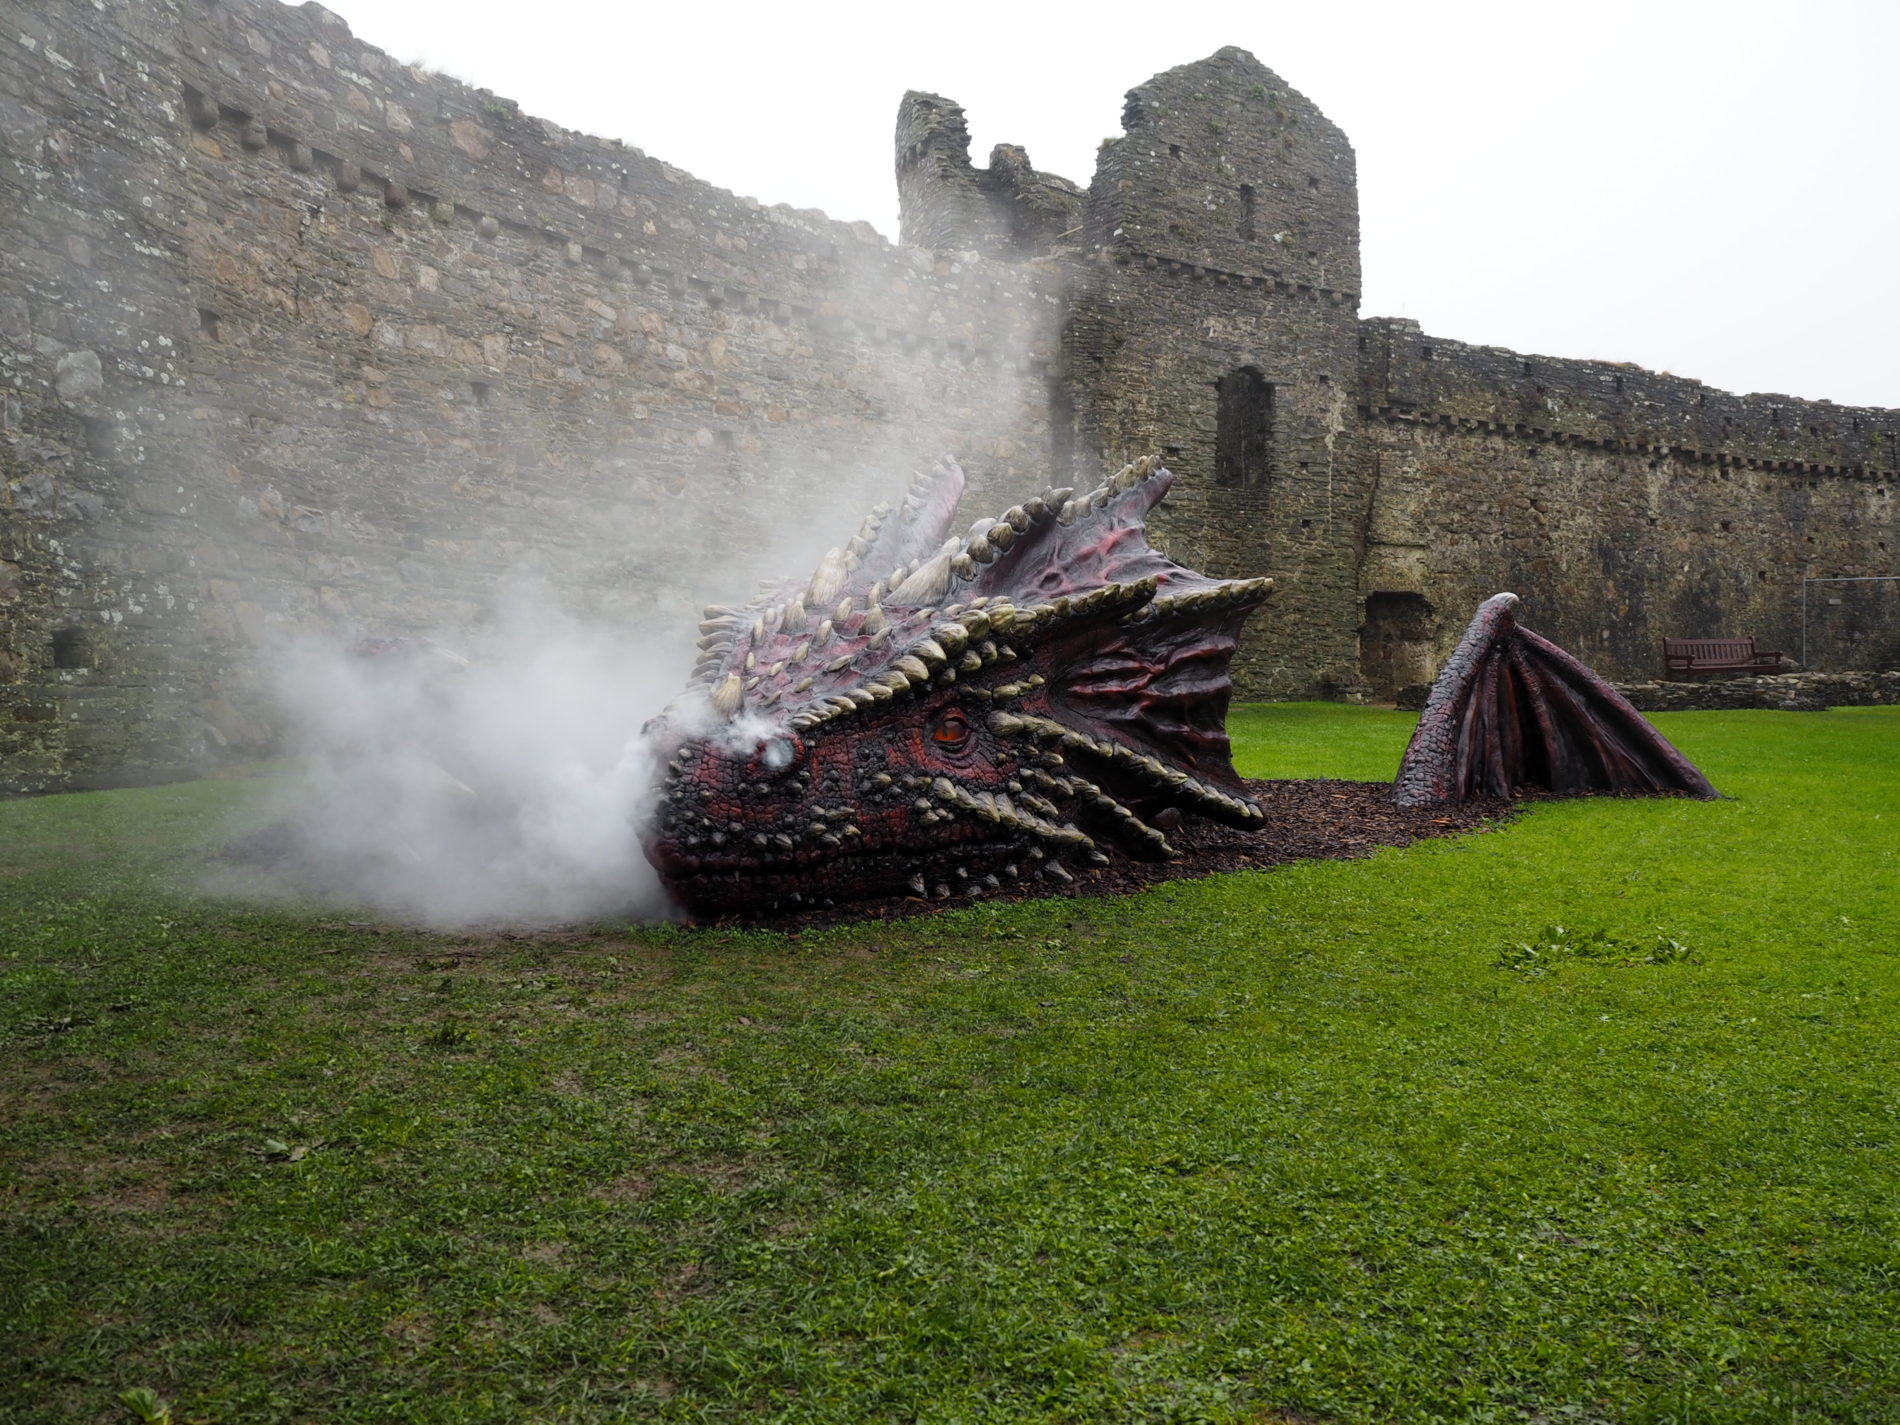 The dragon is part of the Historic Adventures season